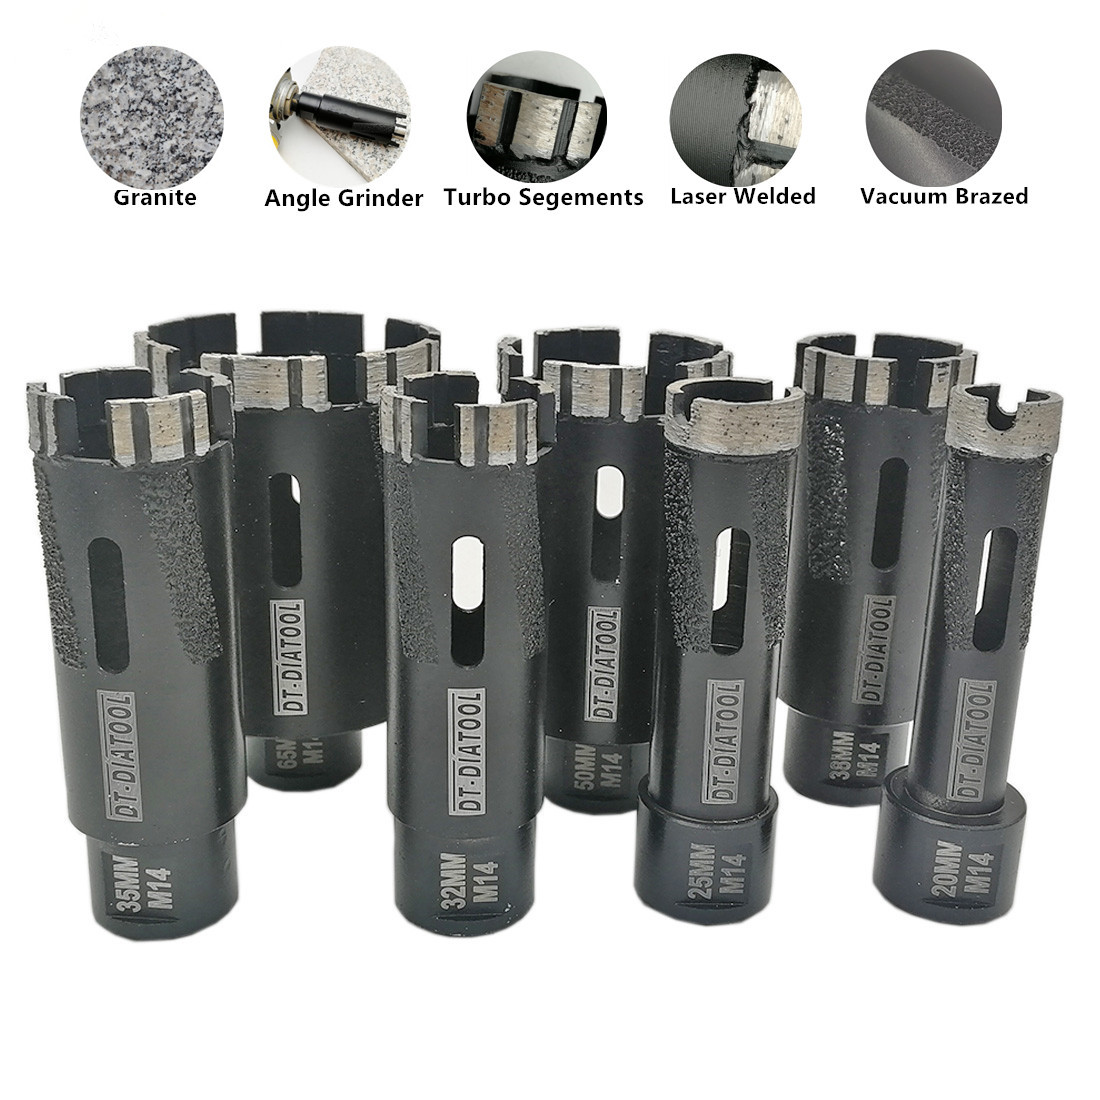 DT-DIATOOL 1pc Laser Welded Turbo Segments Dry Diamond Hole Saw Dry Drilling Core Bits M14 Or 5/8-11 Thread For Granite Marble